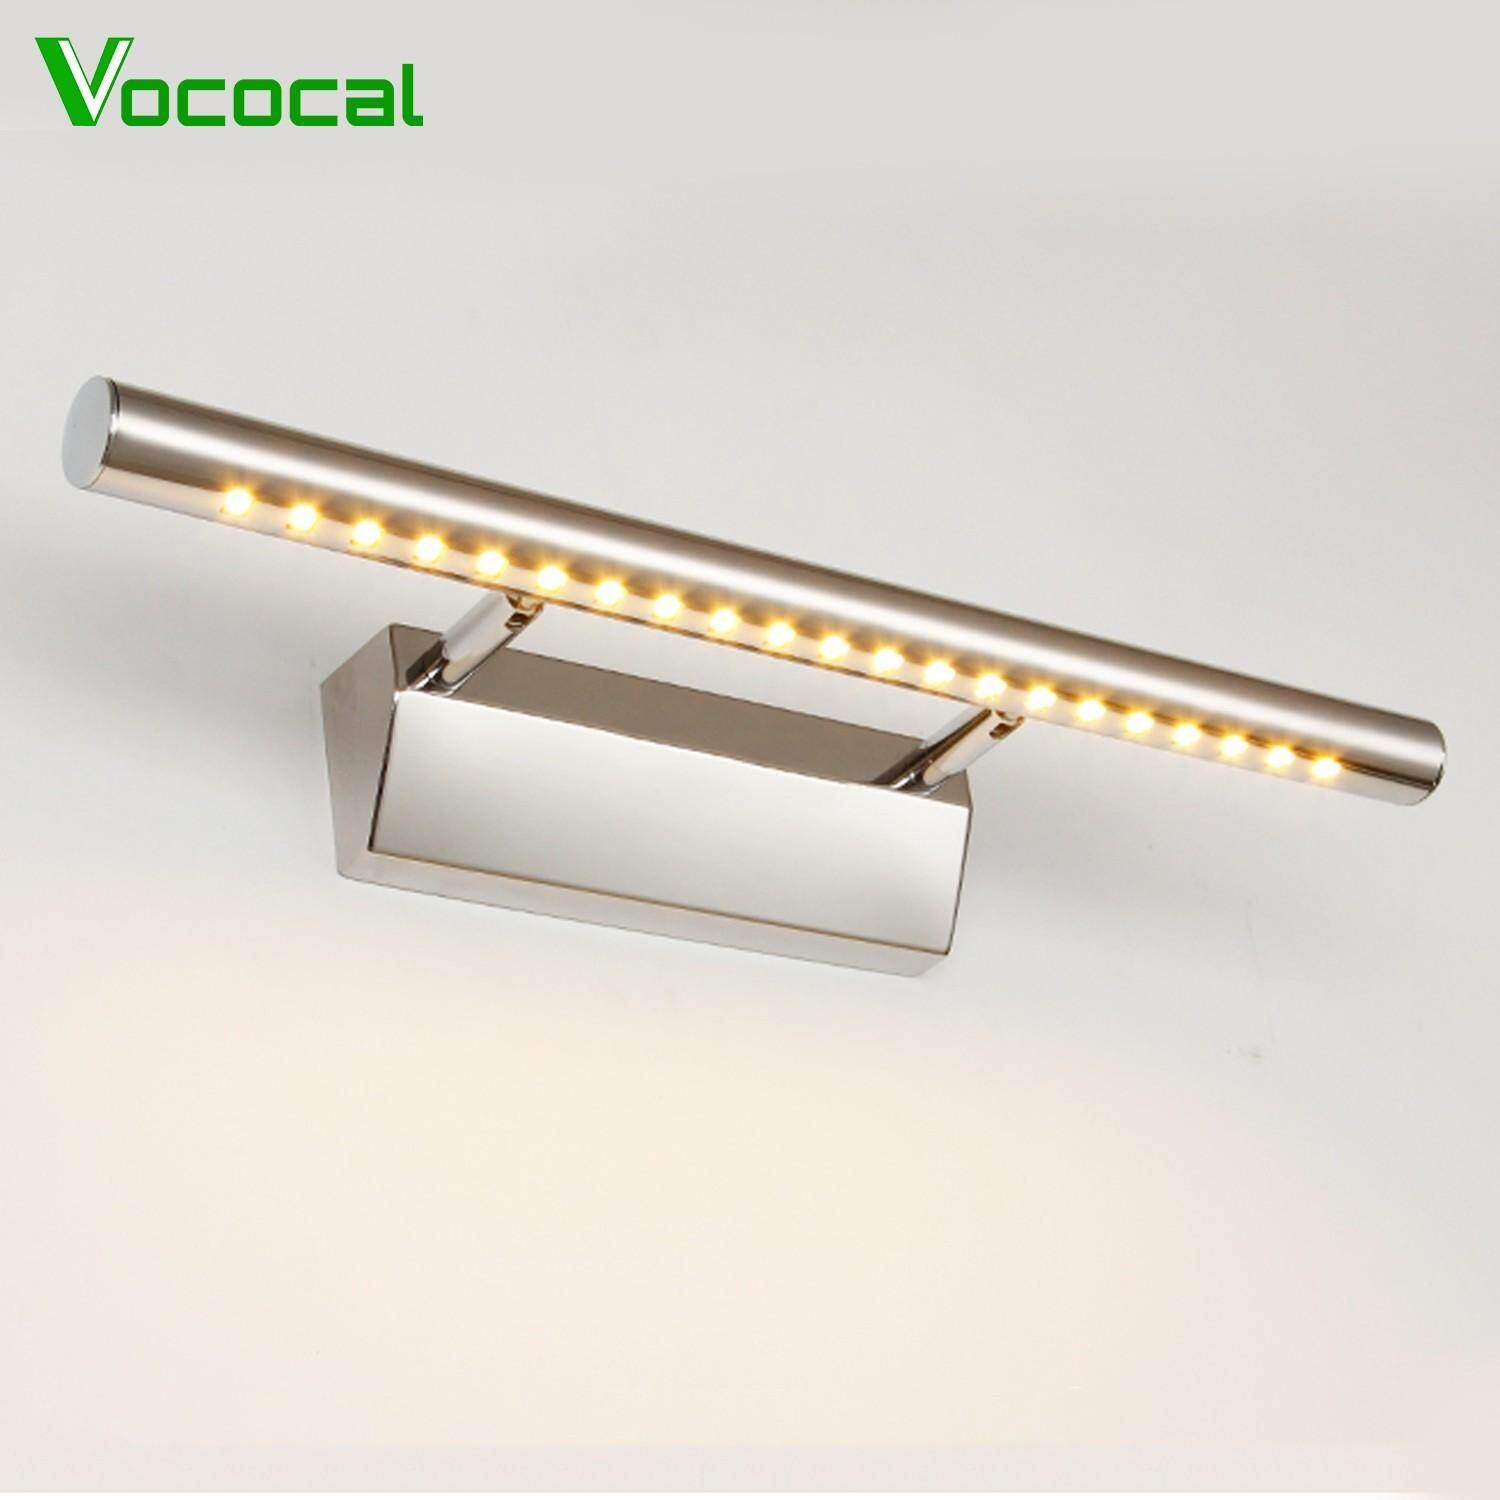 【In stock】Vococal 5W 21-LED Adjustable Stainless Steel Wall Washer Mirror Front Light Lamp with Switch for Home Bedroom Hallway Closet Indoor Bathroom